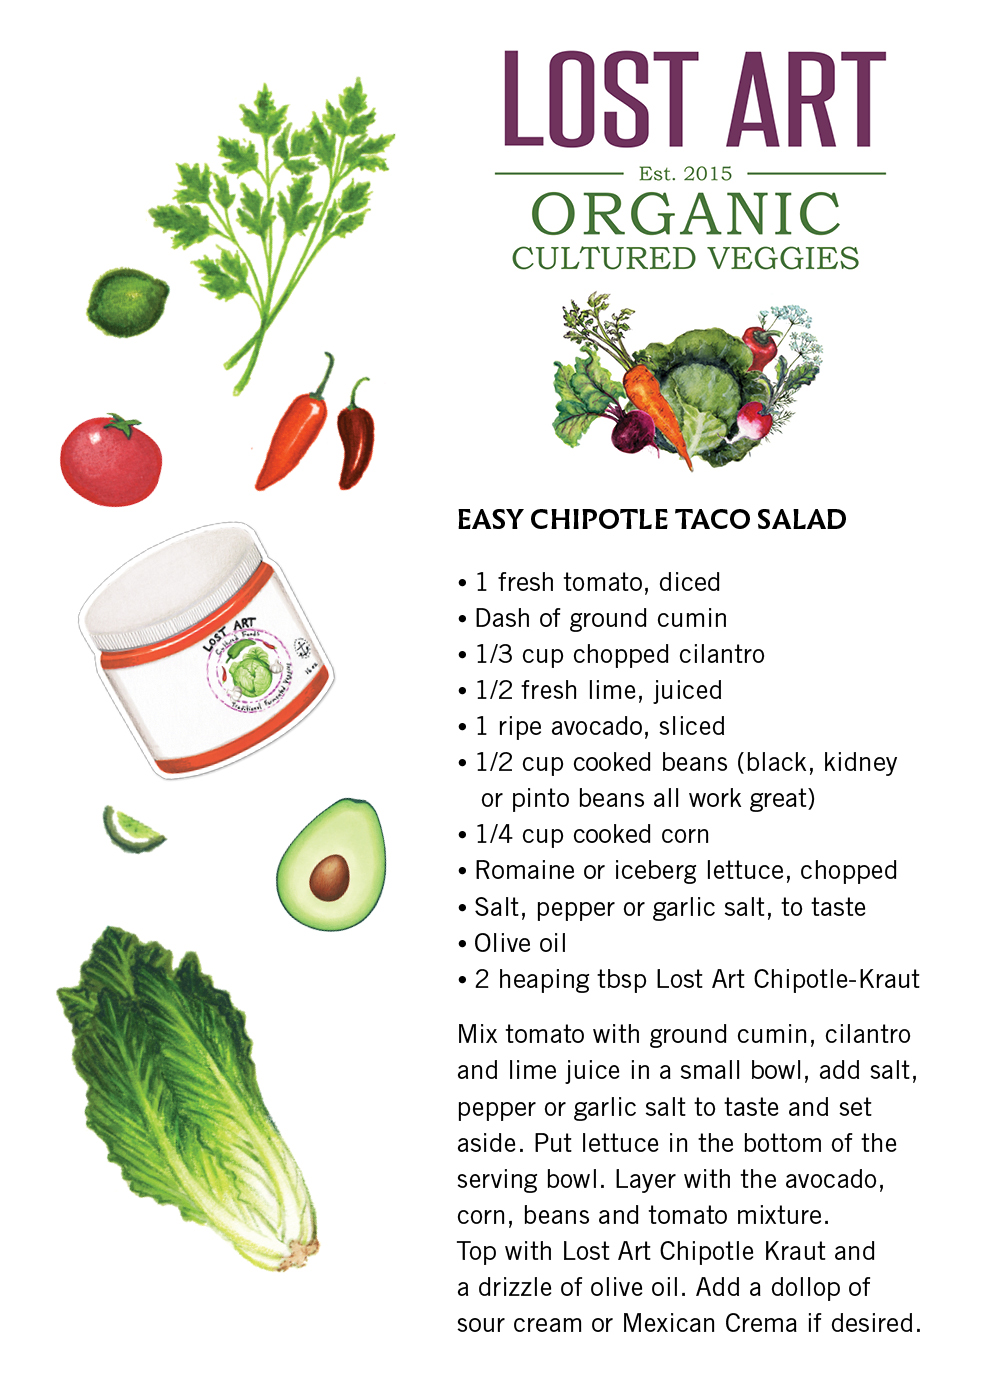 Chipotle Kraut:  Easy Chipotle Taco Salad (click to enlarge & print)